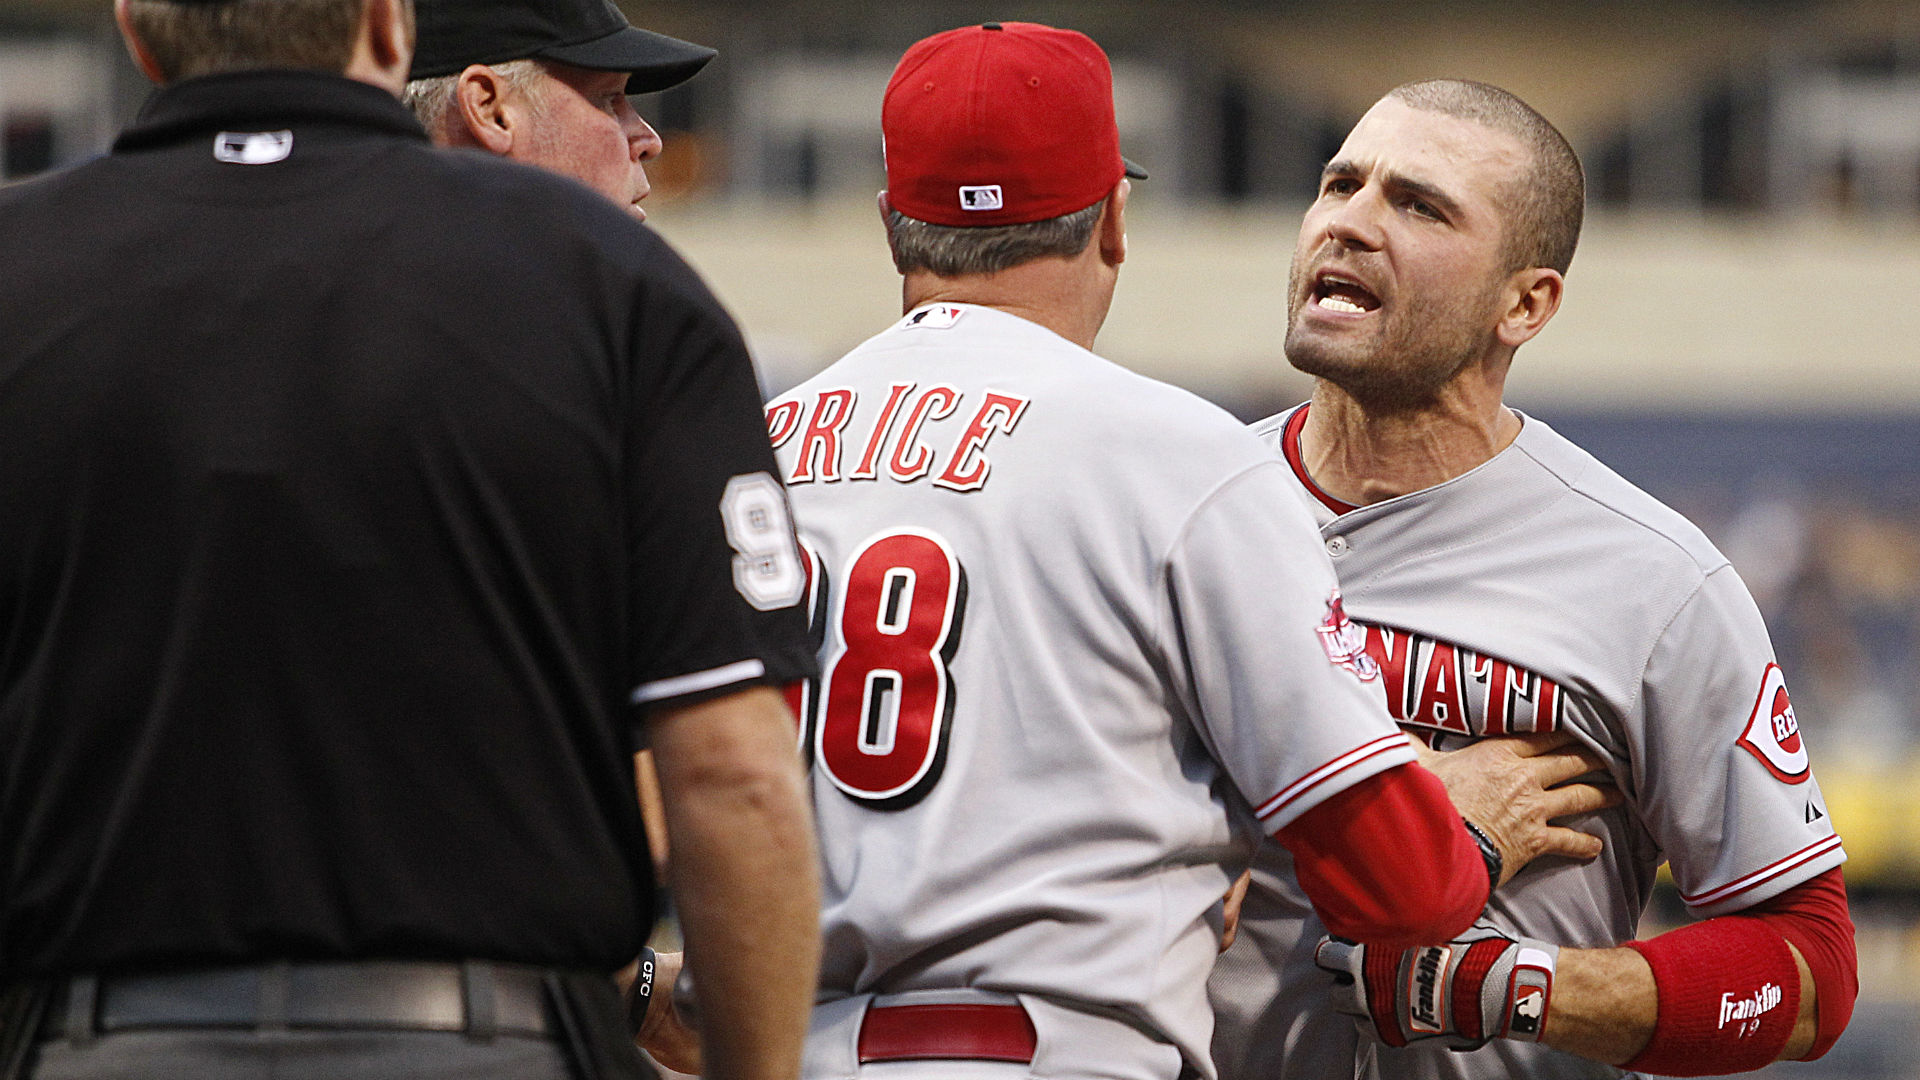 Joey Votto charges ump, makes contact during post-ejection ...